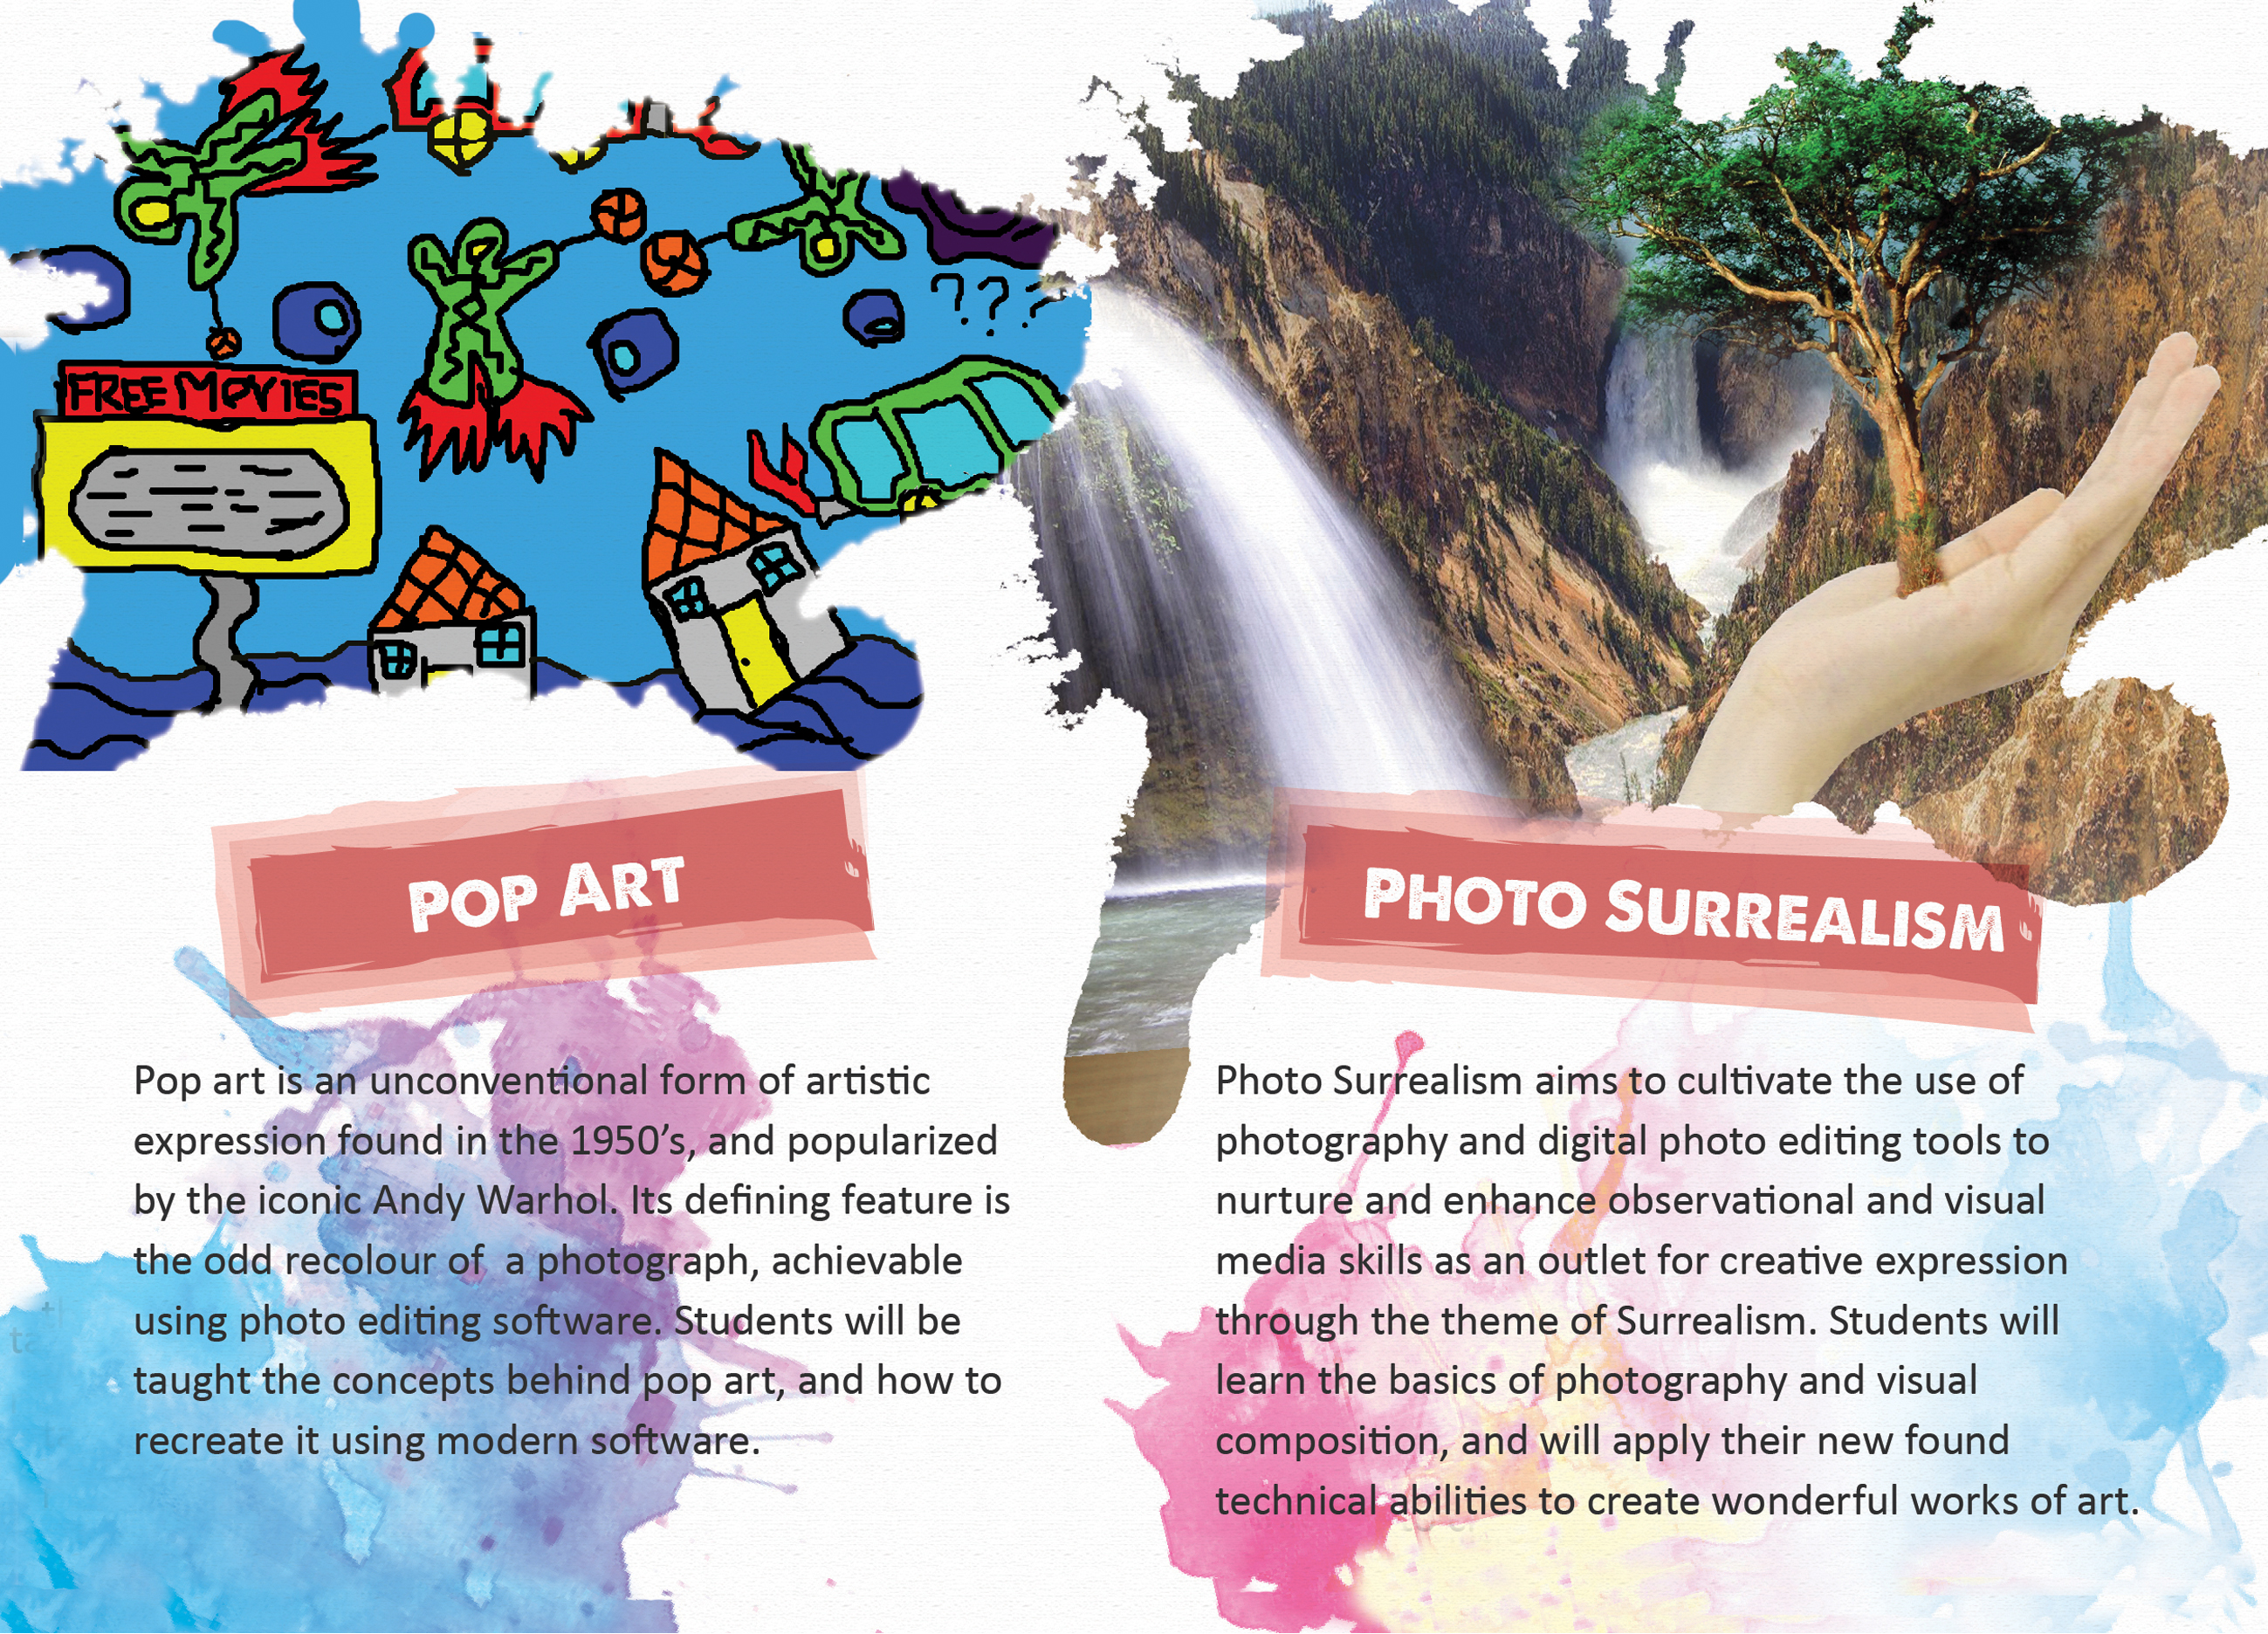 Pop Art and Photo Surreal